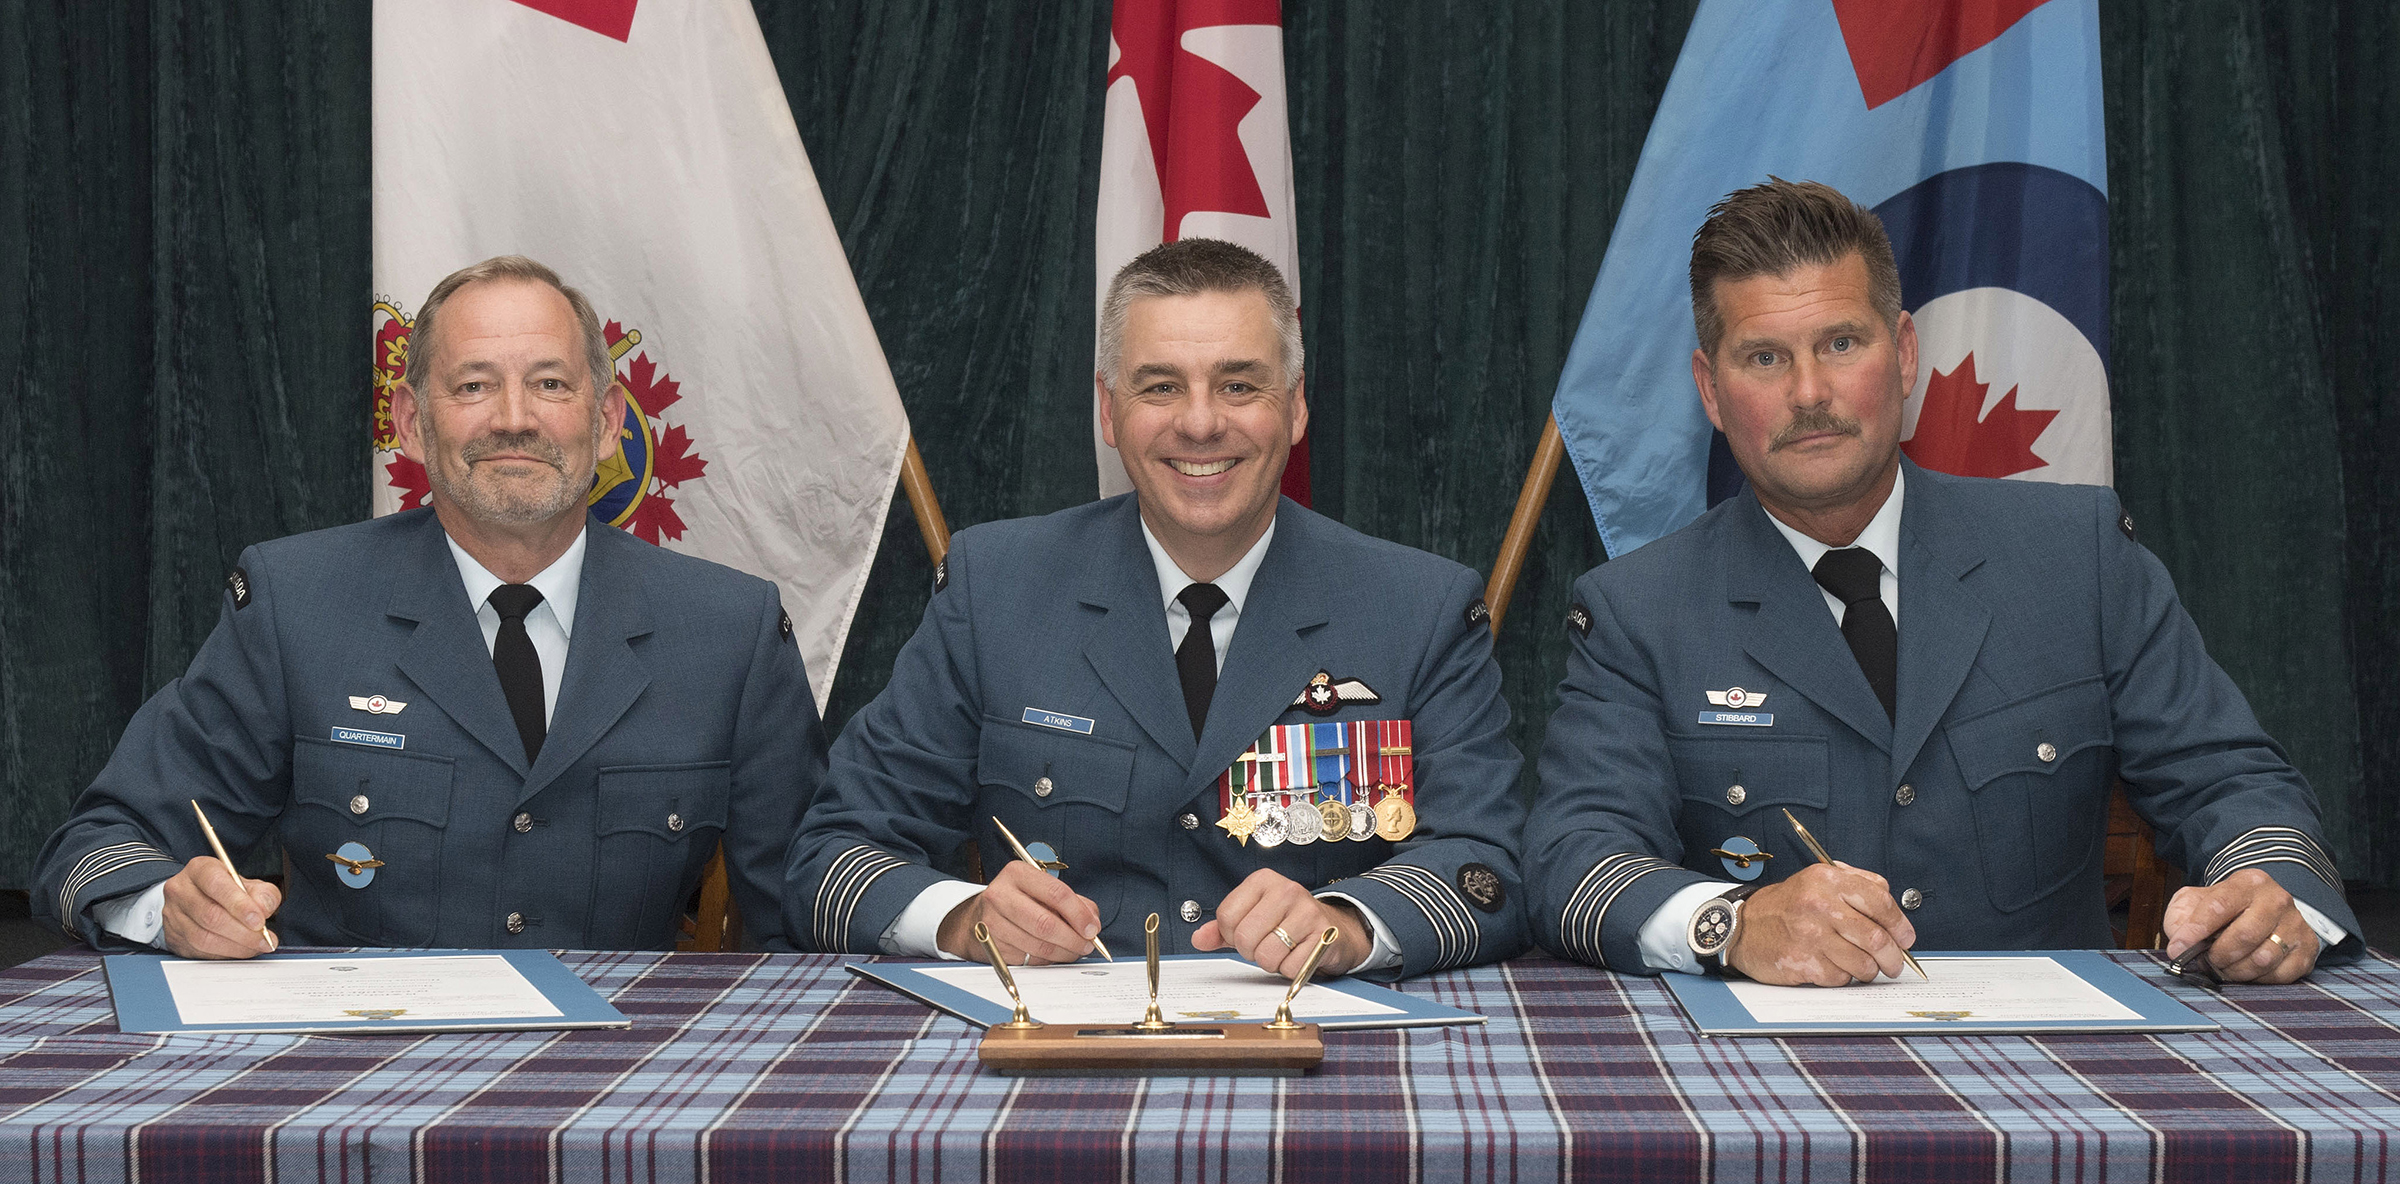 Three men, wearing military uniforms and holding pens, sit behind a tartan covered table. In front of each is a large document.